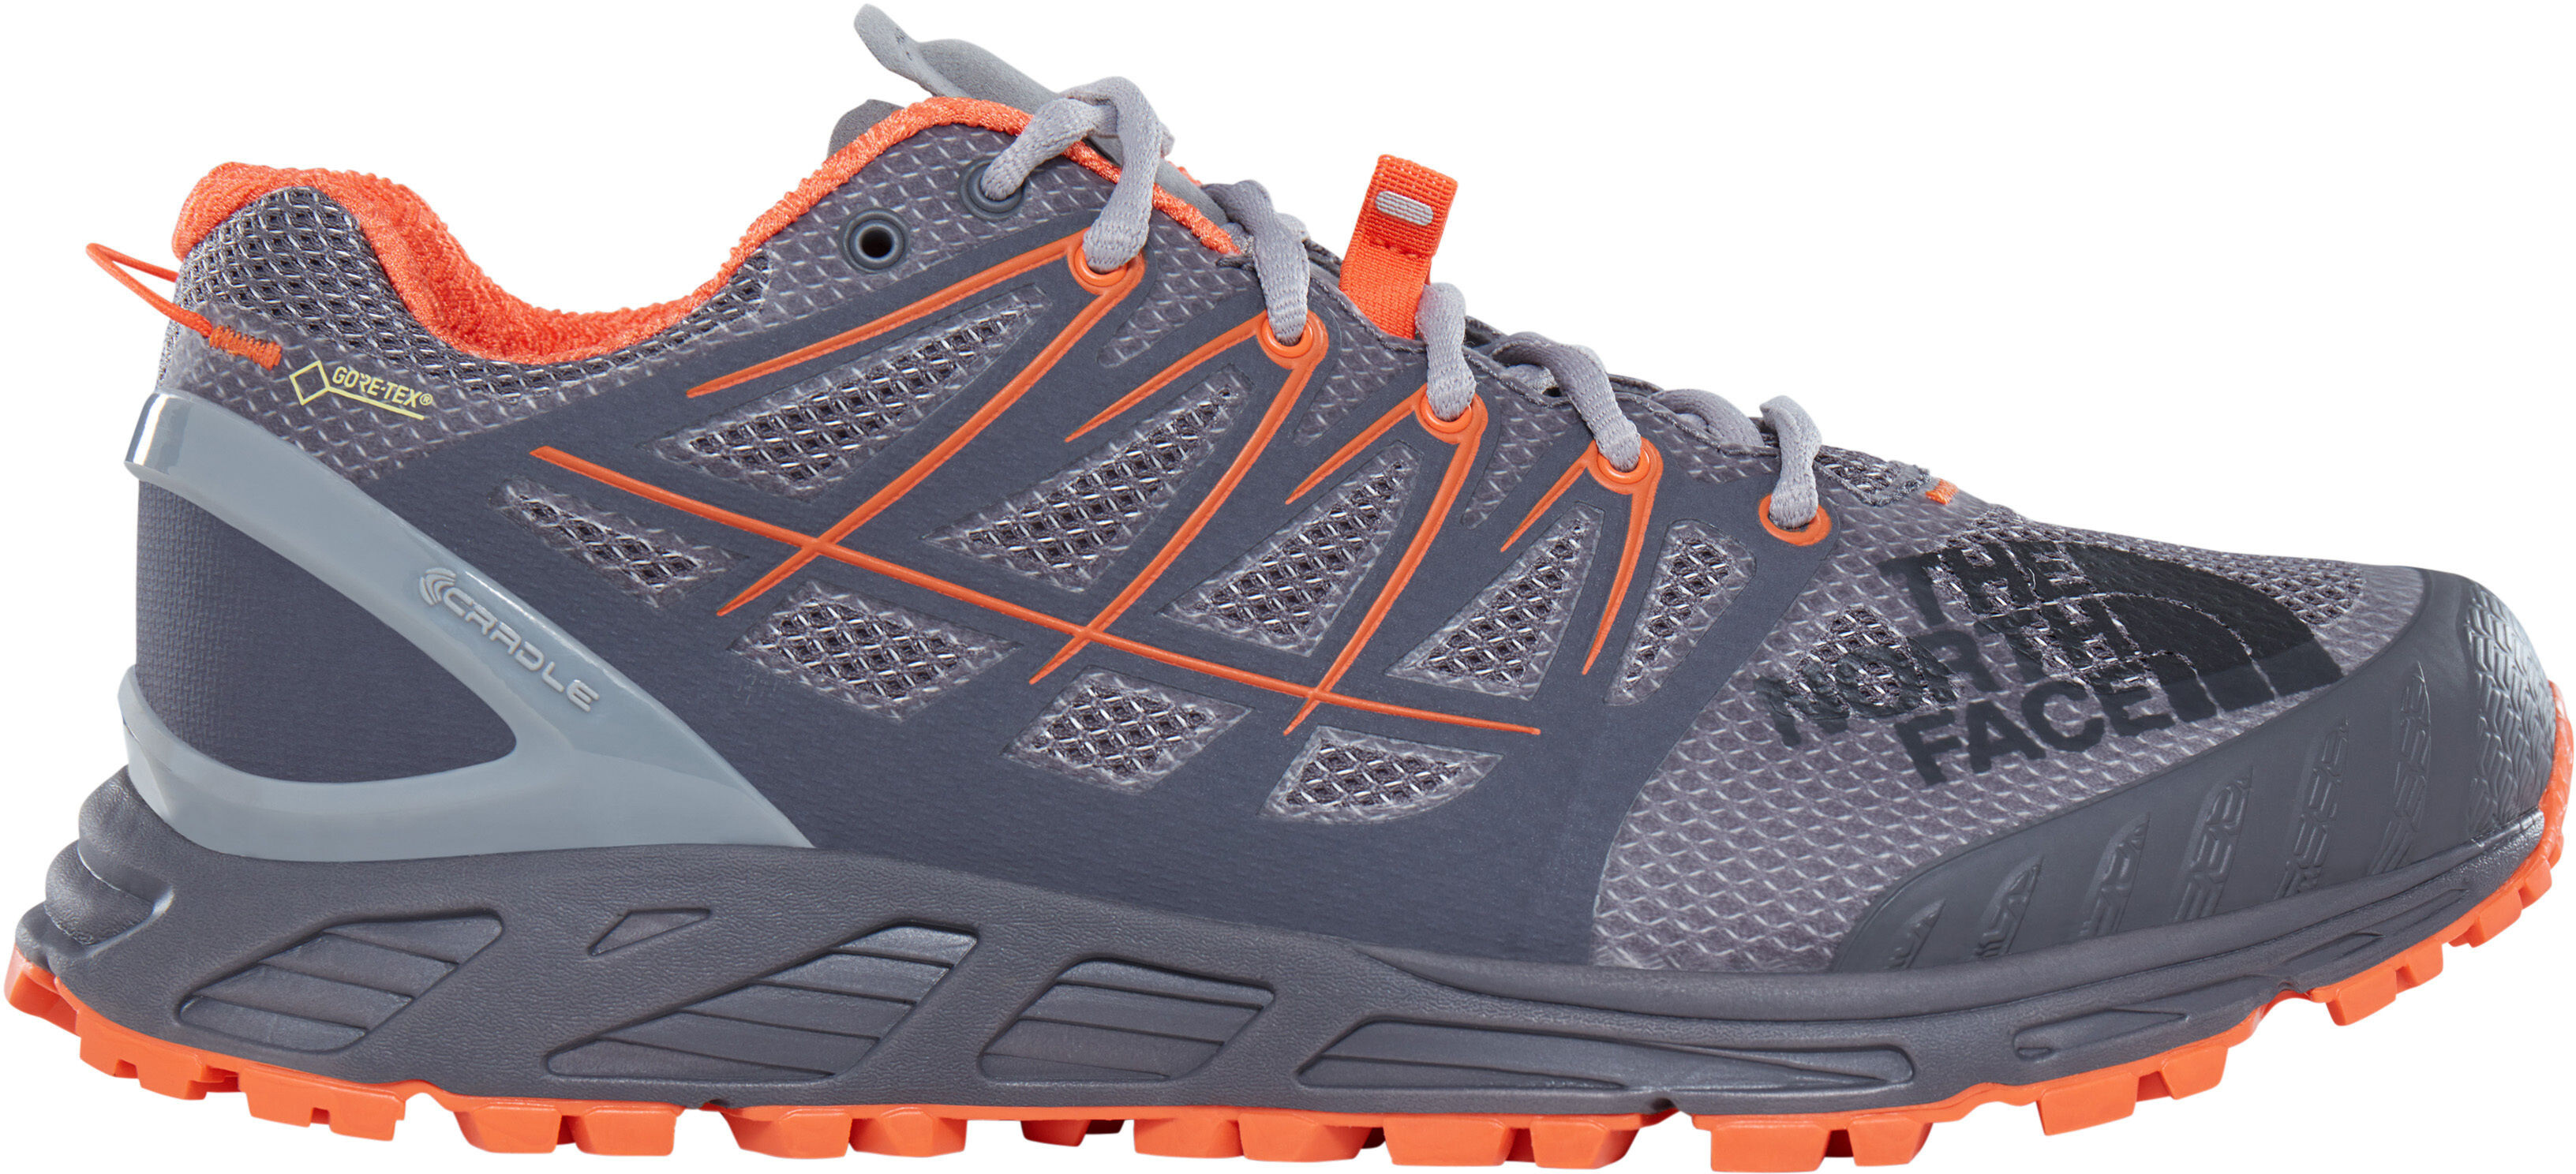 The North Face M s Ultra Endurance II GTX Shoes Blackened Pearl Scarlet Ibis 182ffb3c6